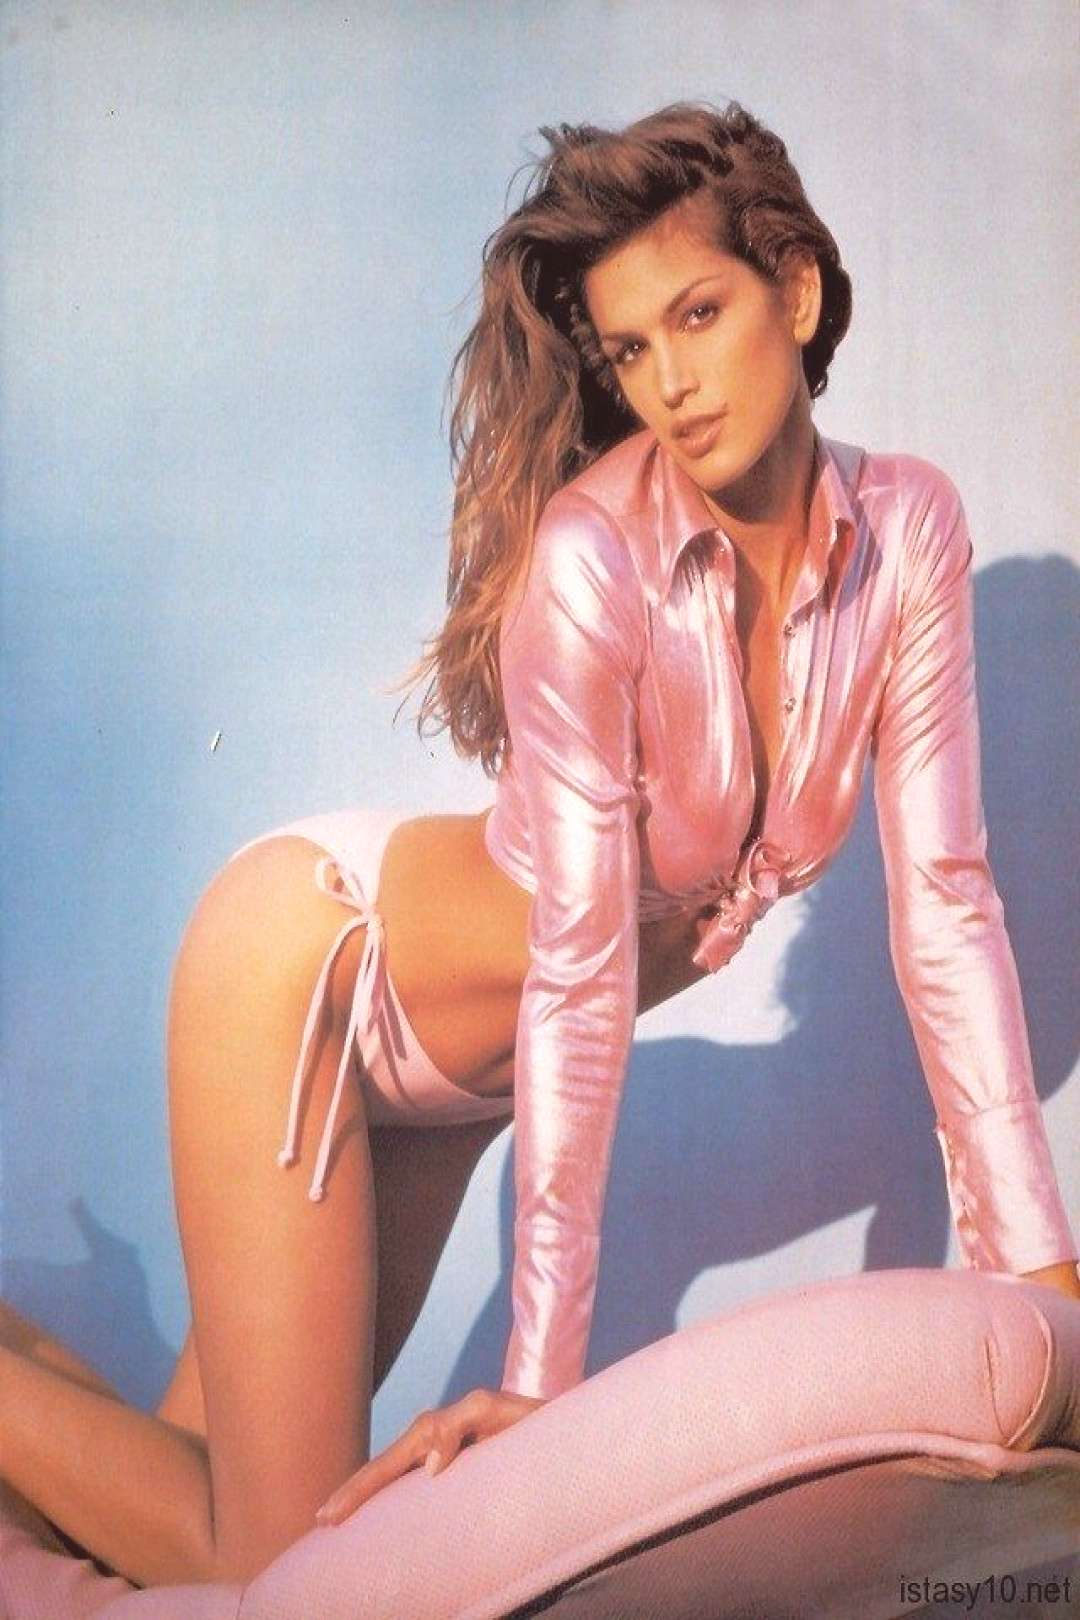 Cindy Crawford, 1994 Cynthia Ann Crawford (born February 20, 1966) is an American model and actress